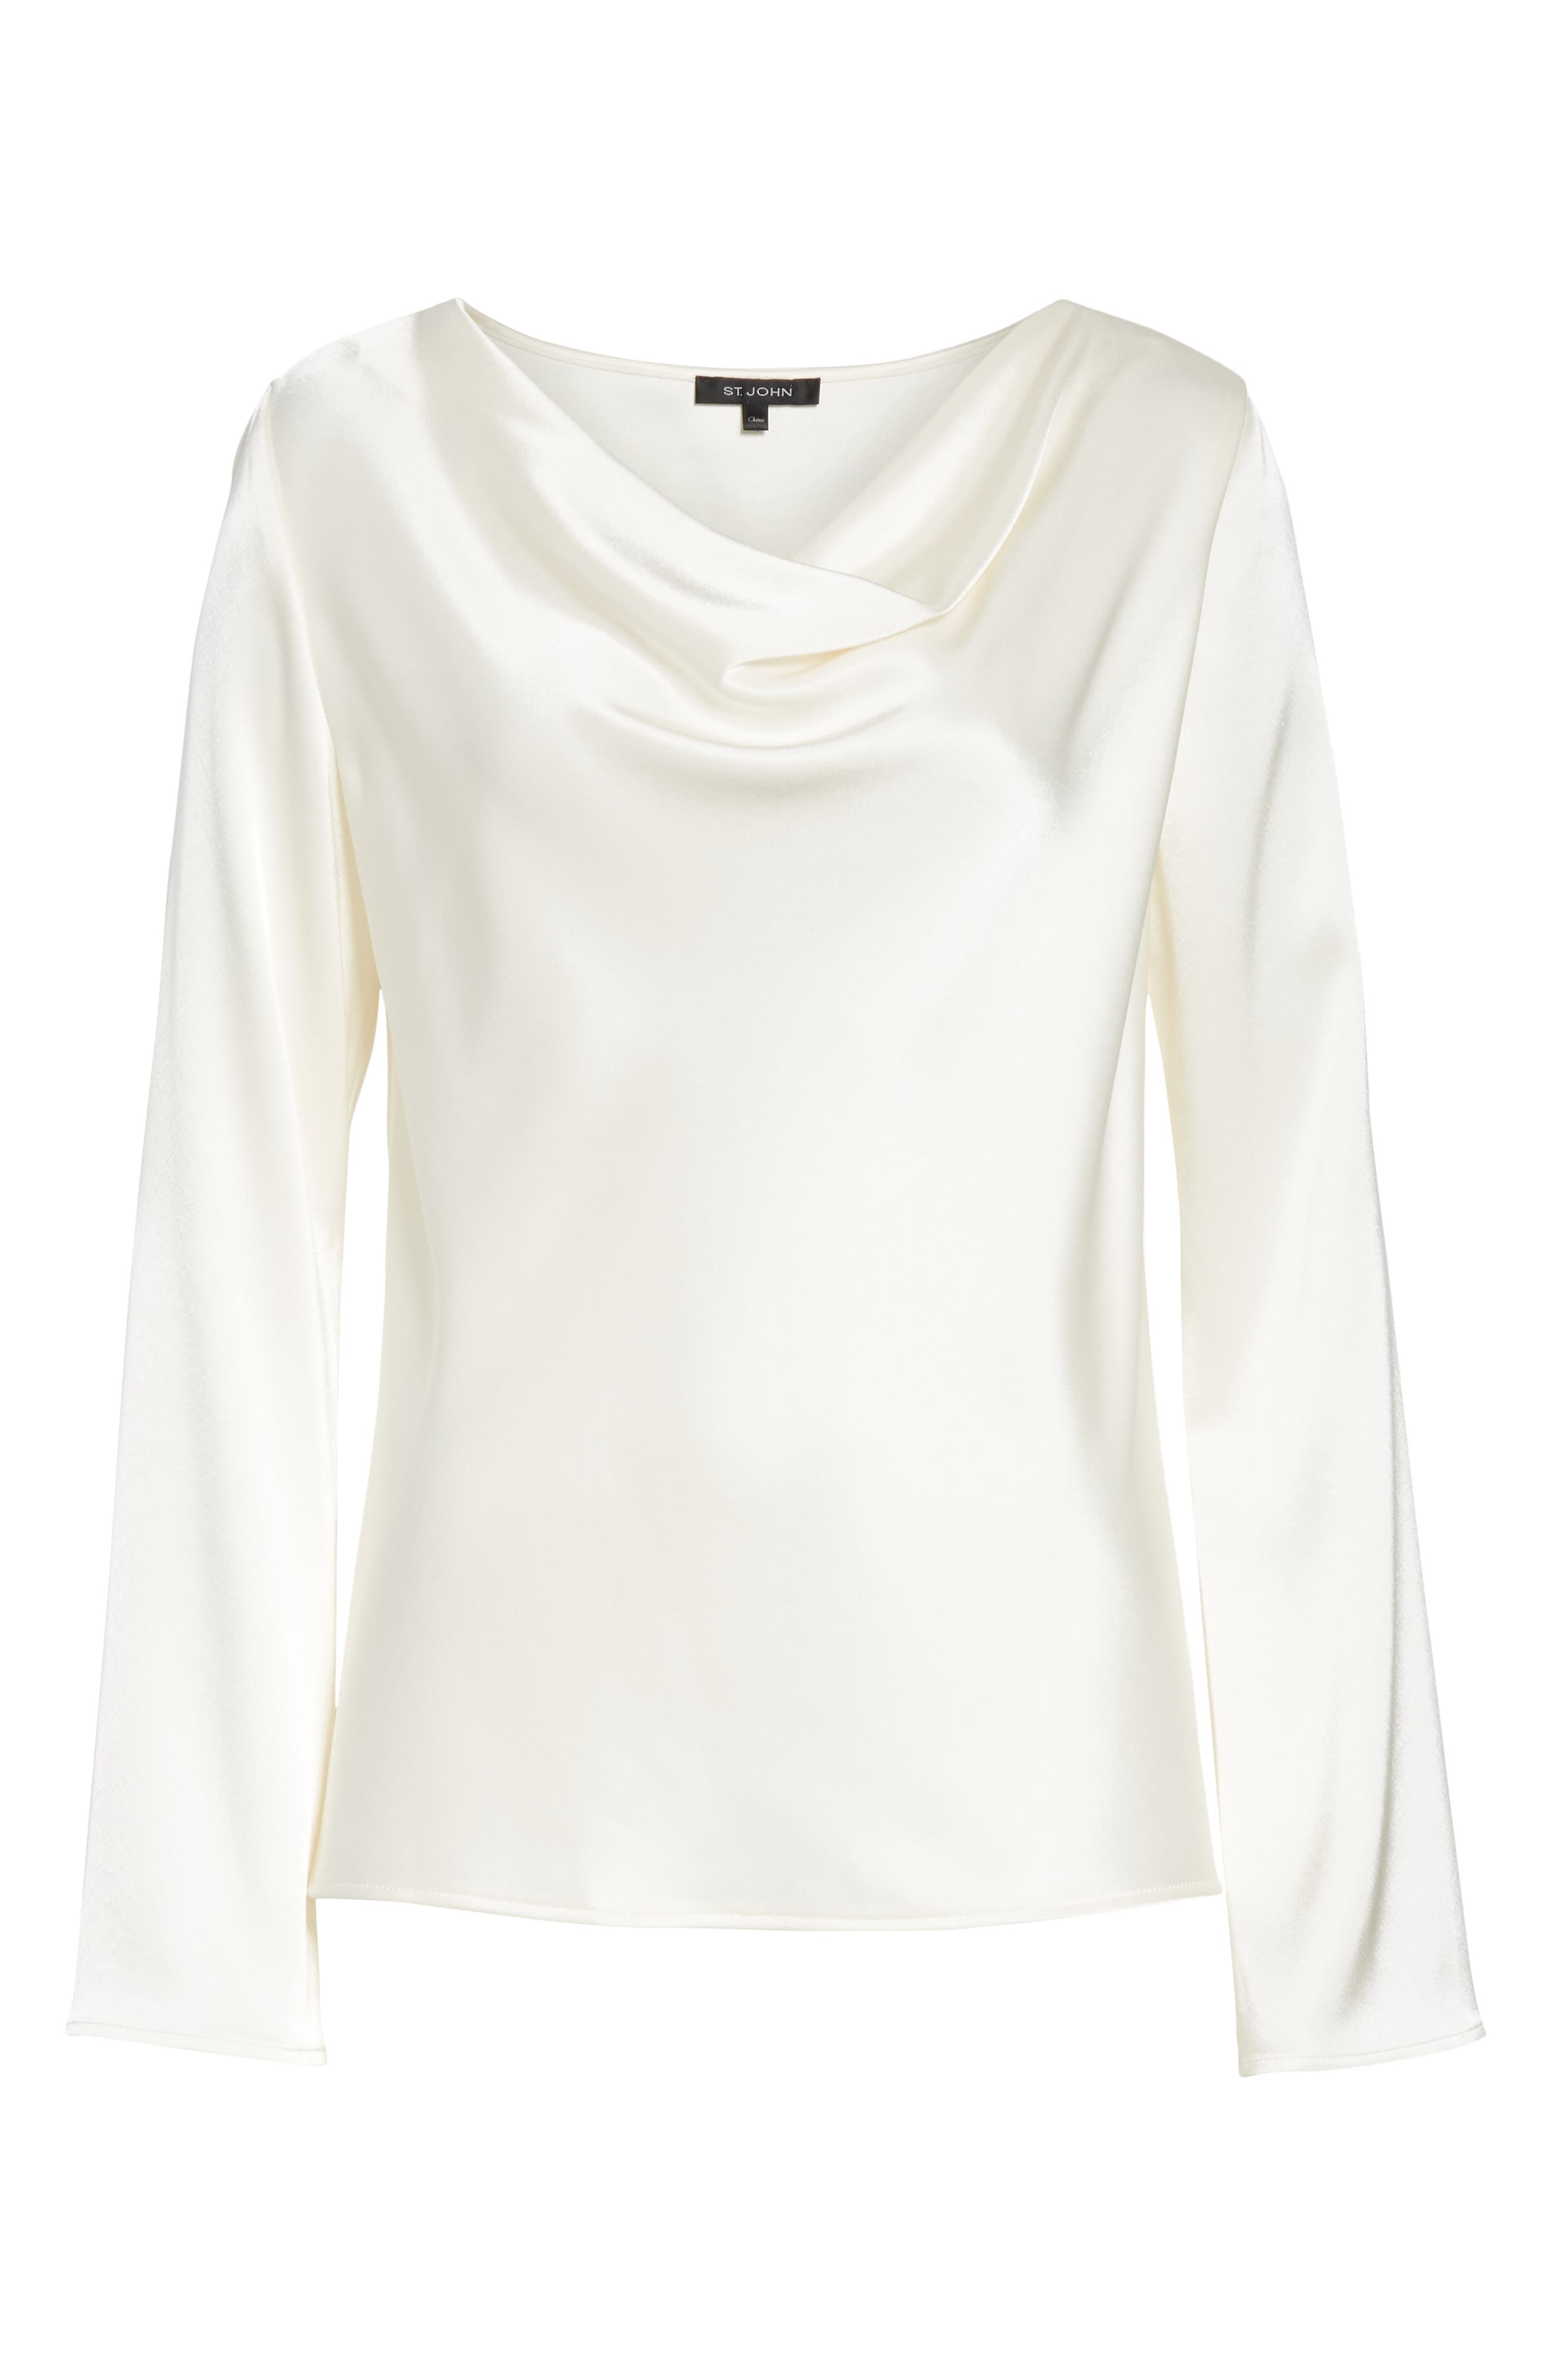 ST. JOHN COLLECTION,                             Satin Cowl Neck Blouse,                             Alternate thumbnail 7, color,                             CREAM